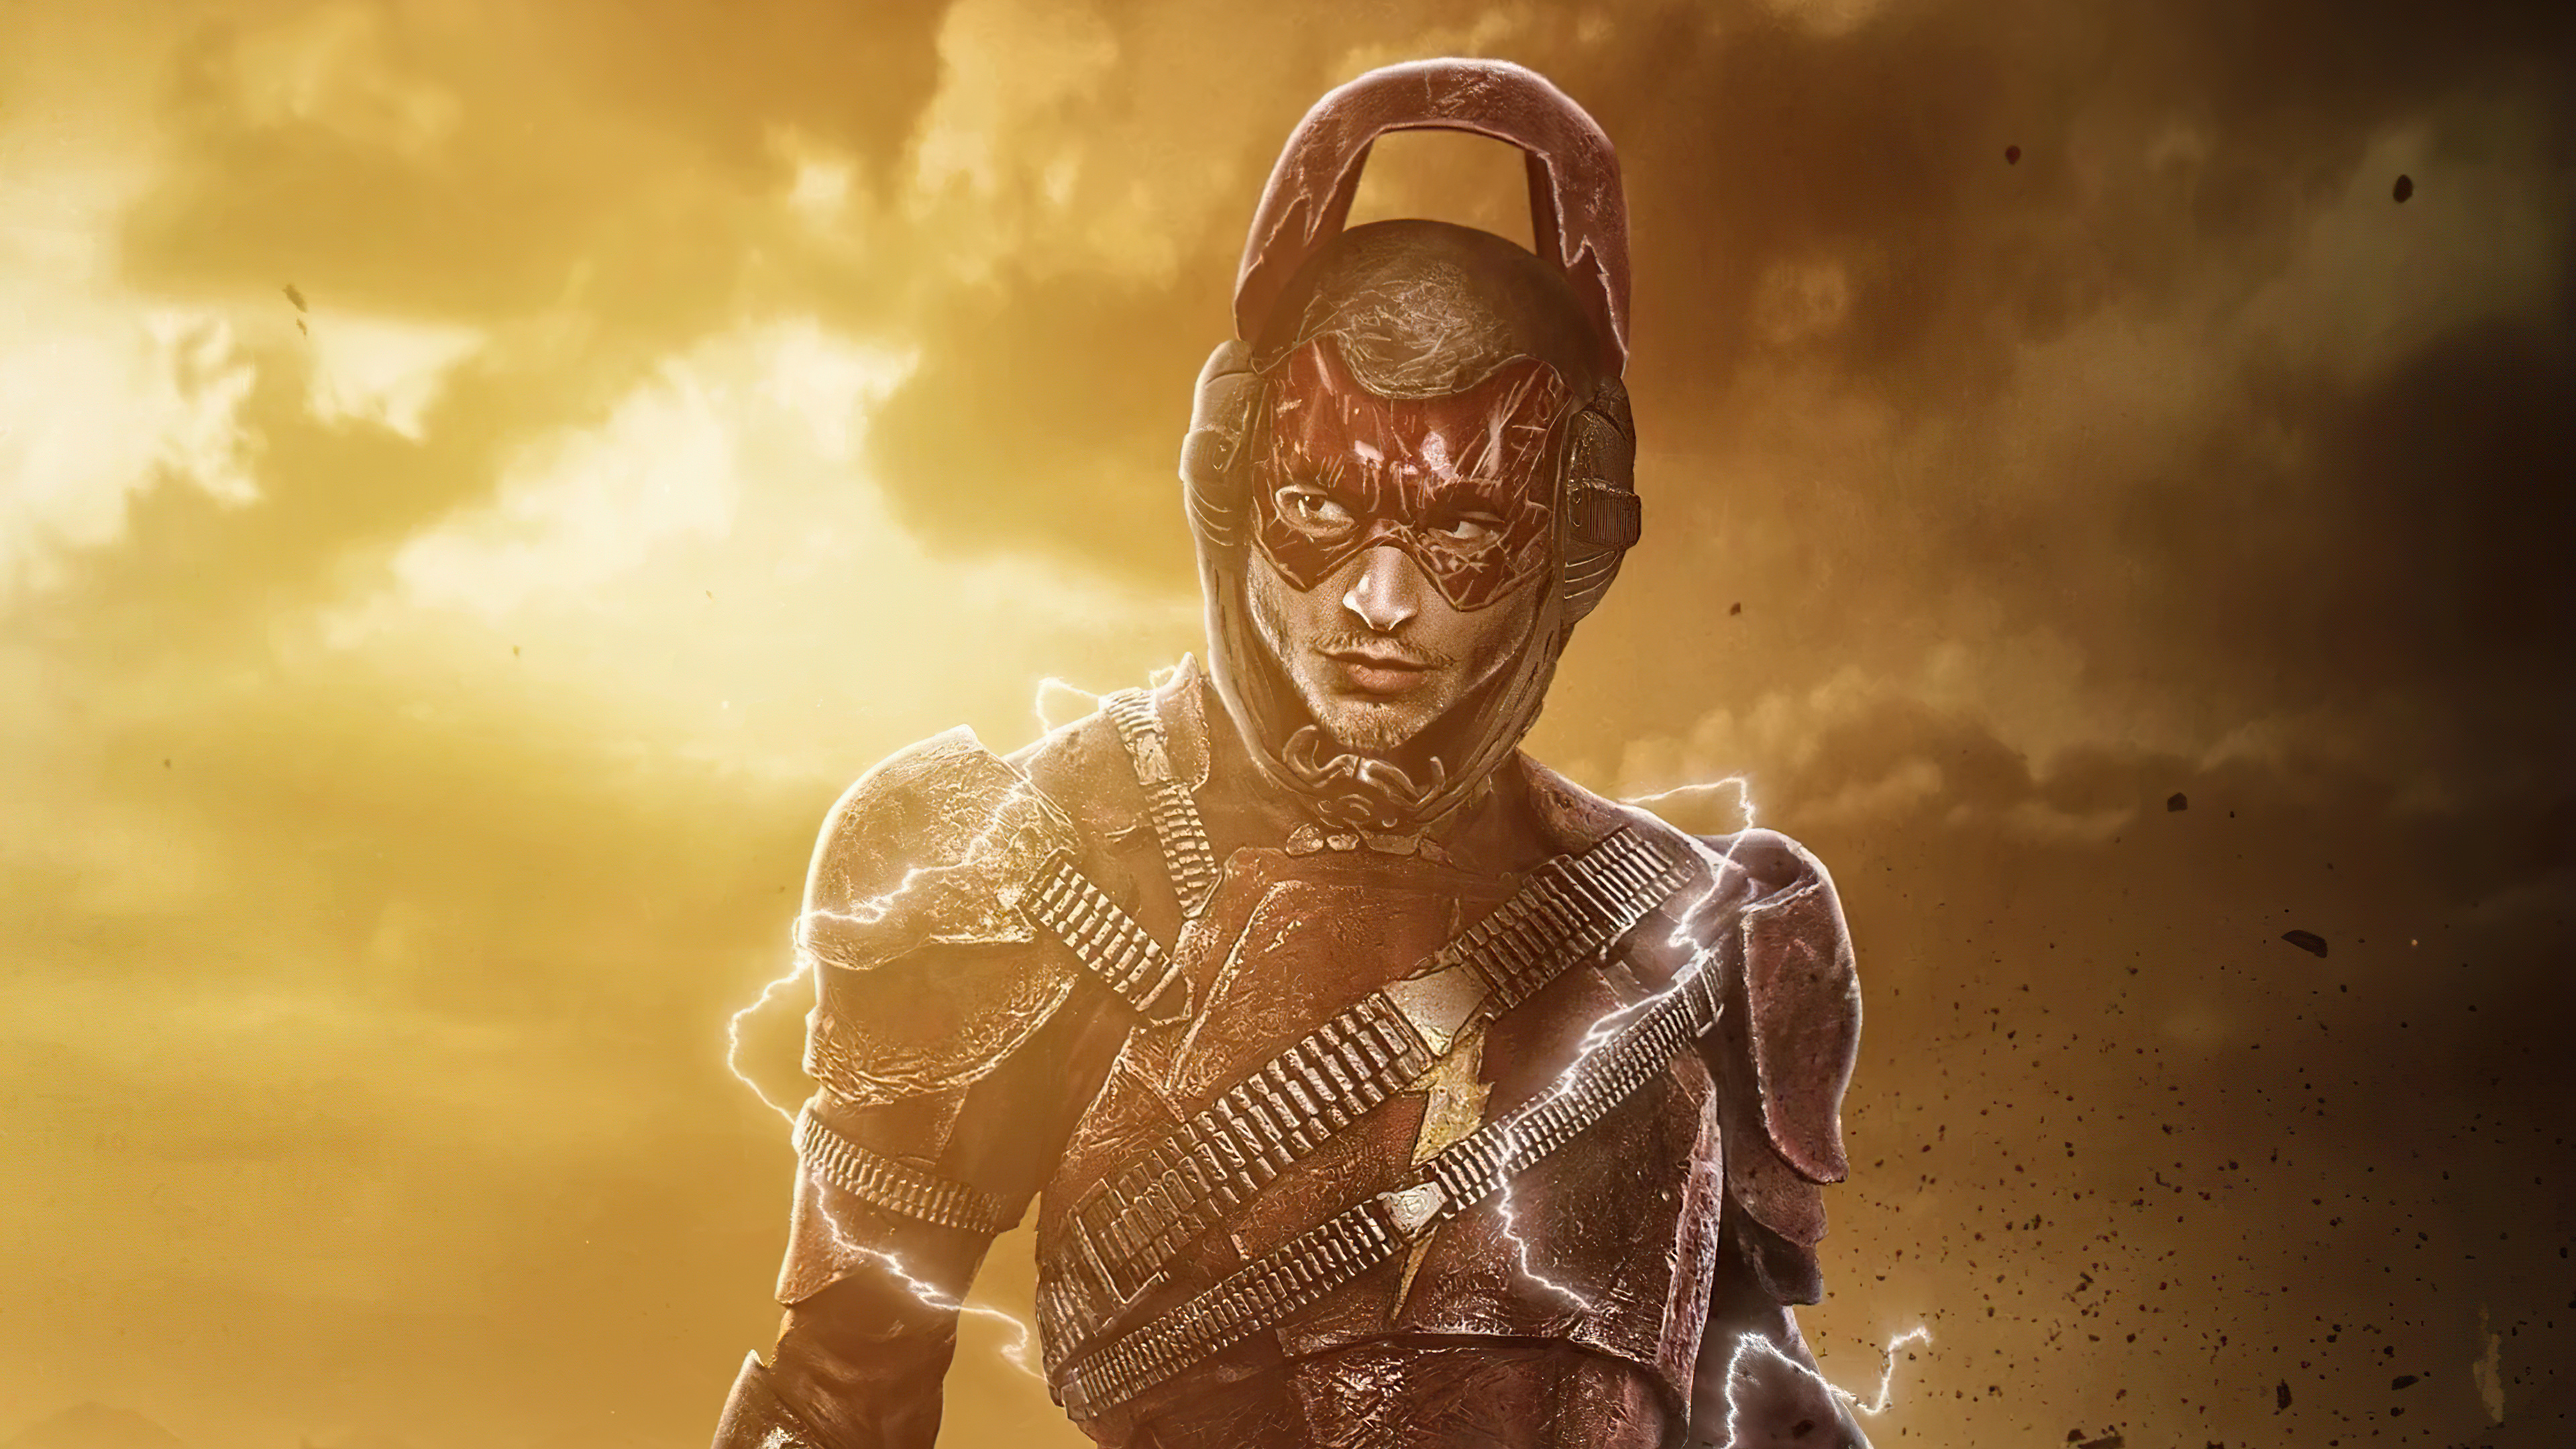 flash zack synders justice league 4k 1618165824 - Flash Zack Synders Justice League 4k - Flash Zack Synders Justice League 4k wallpapers